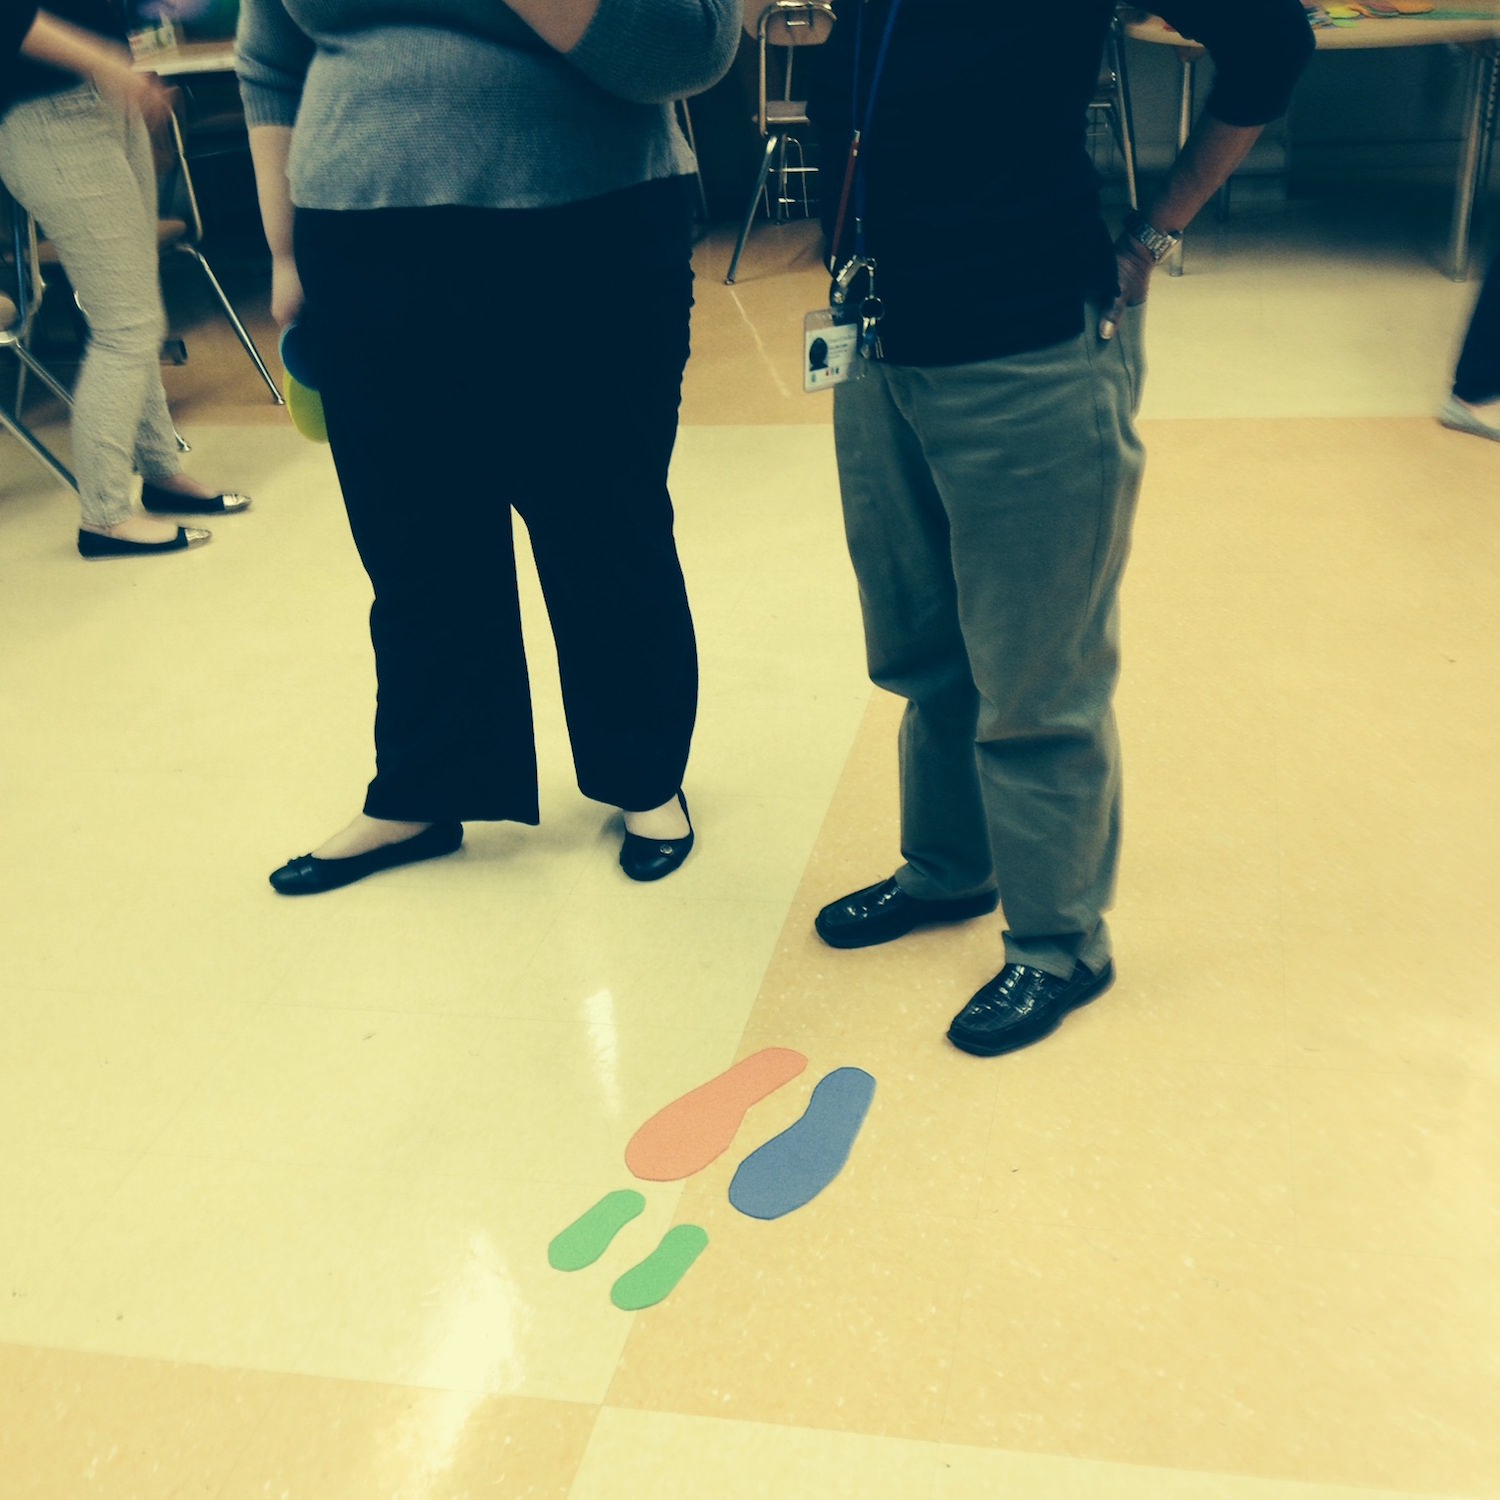 teacher circle foot steps activity